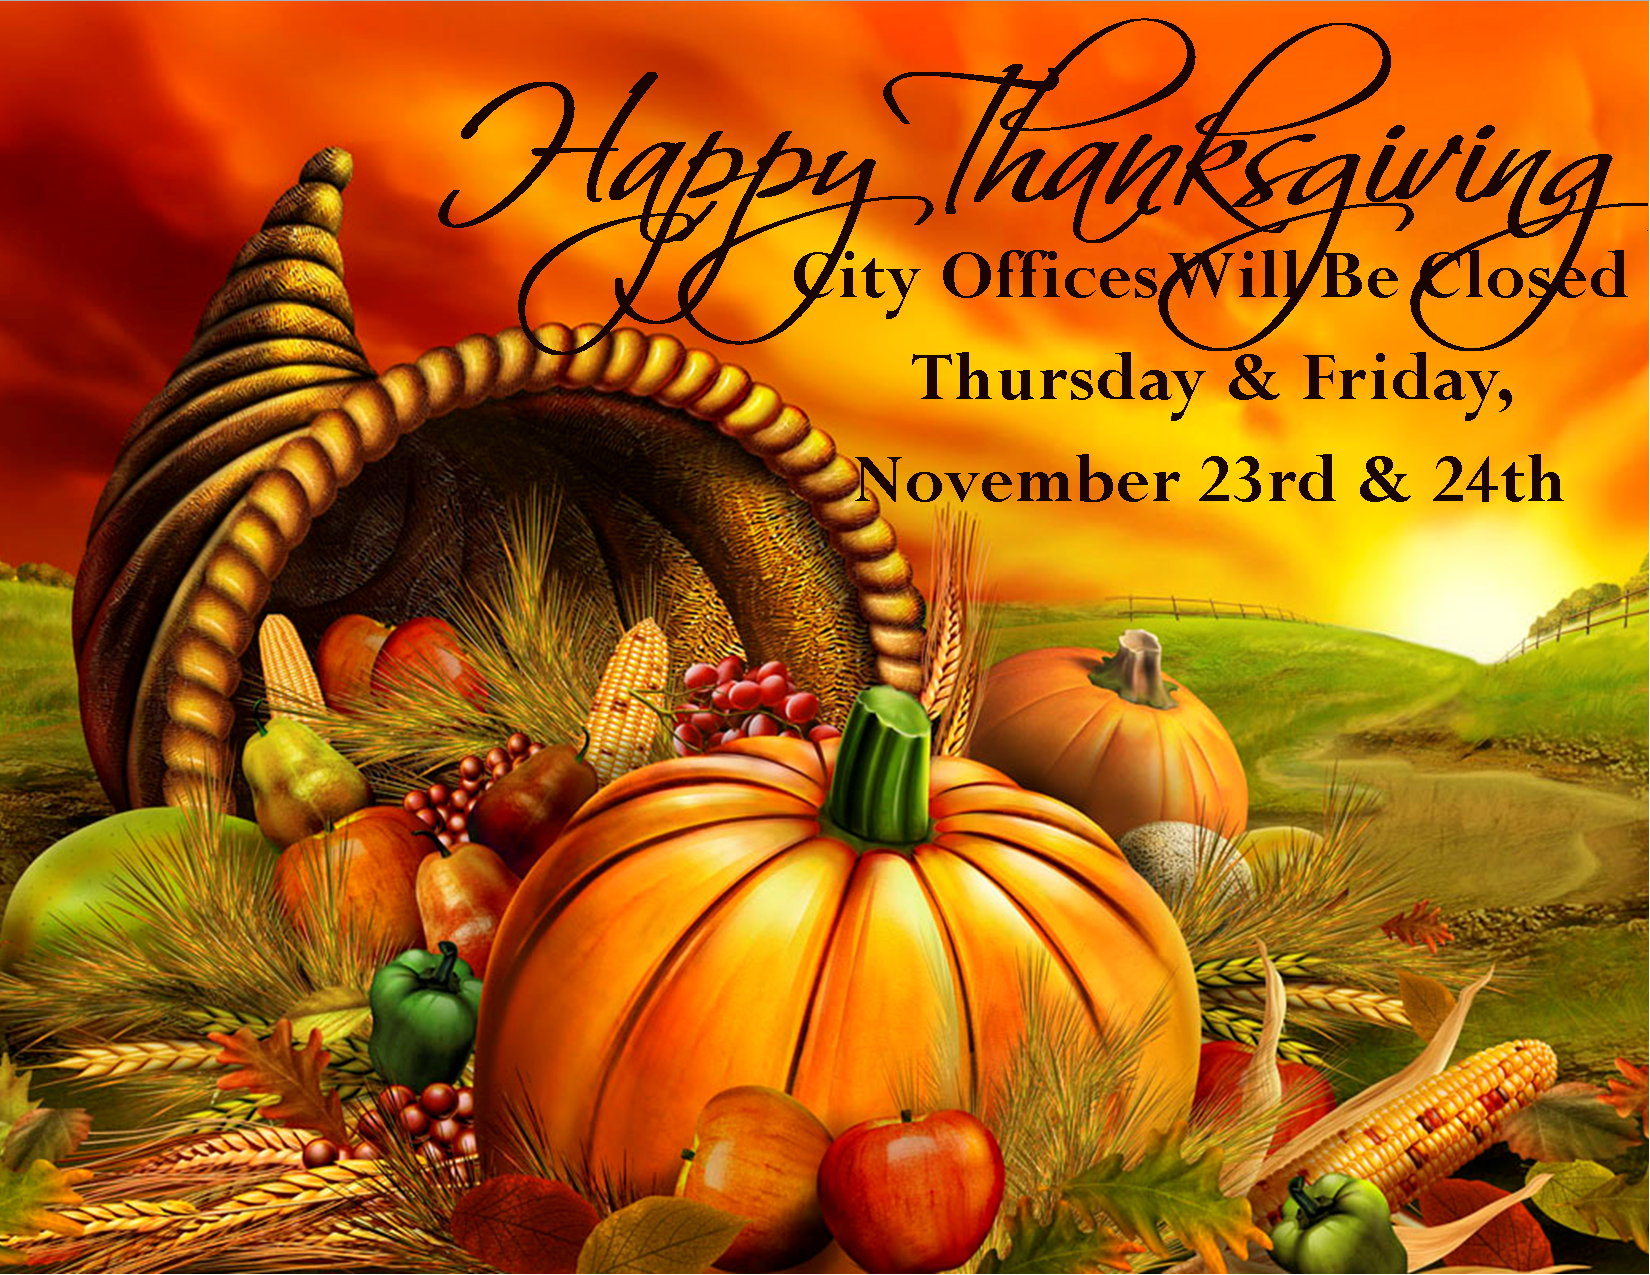 City_Offices_Closed_11_Thanksgiving